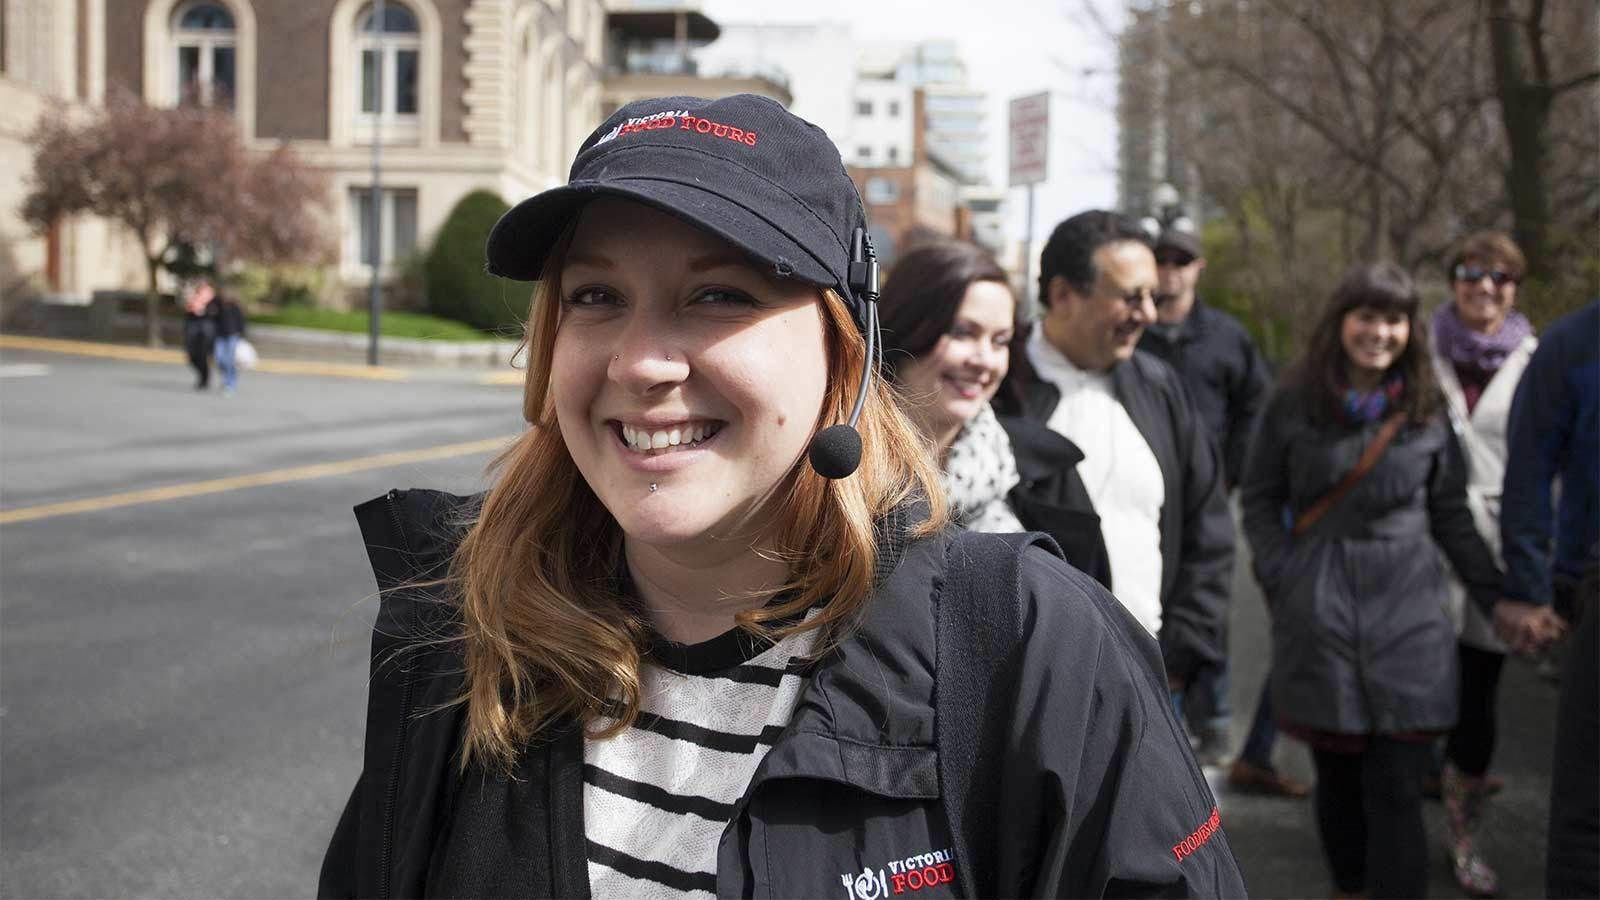 Tour guide on the Downtown Food Tour in Victoria BC